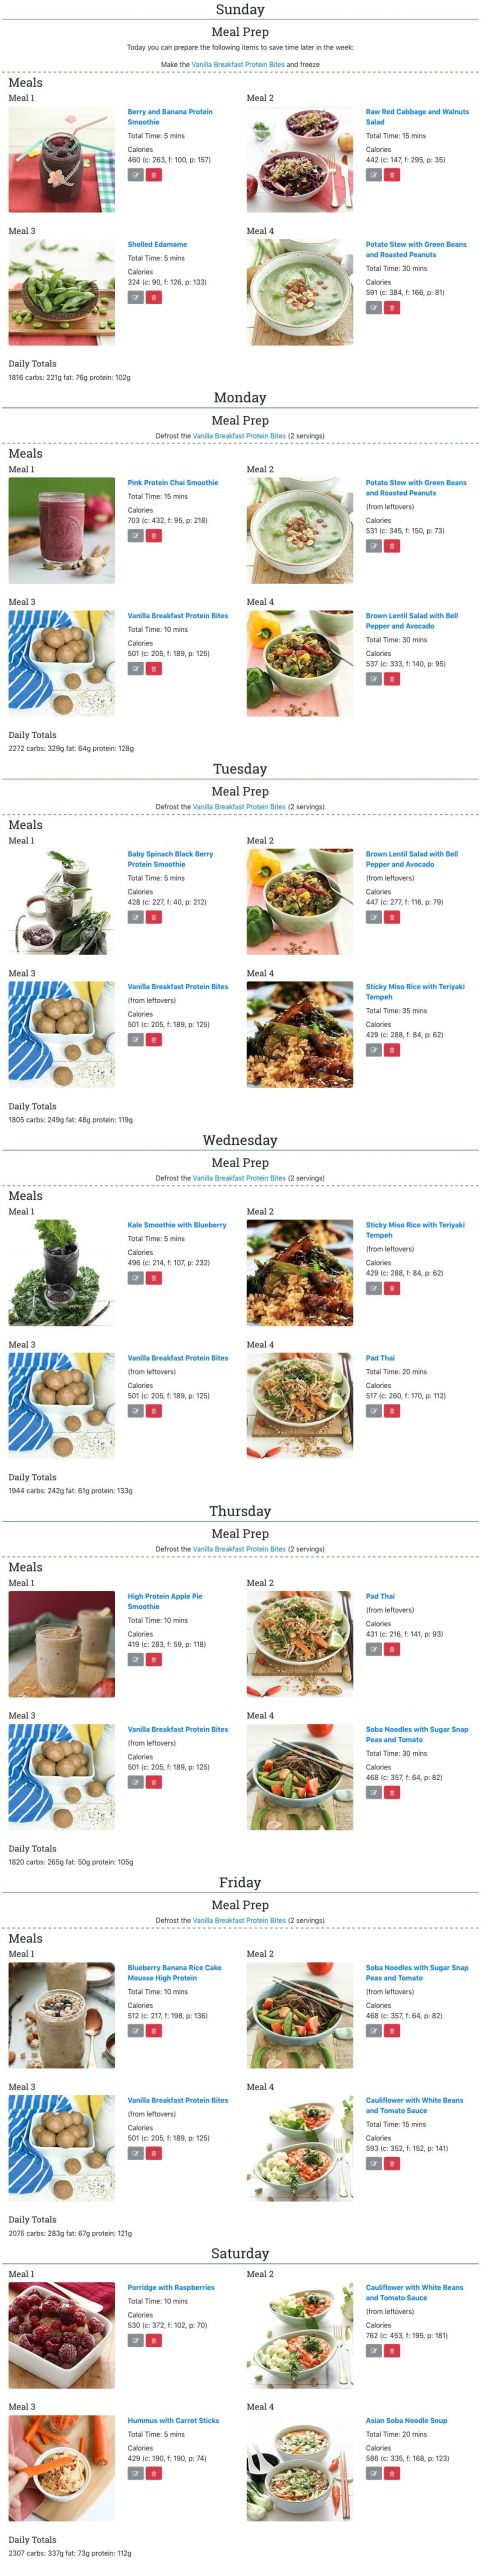 High Protein Vegan Plan  Here's A Vegan Meal Plan that's Packed with Protein Vegan